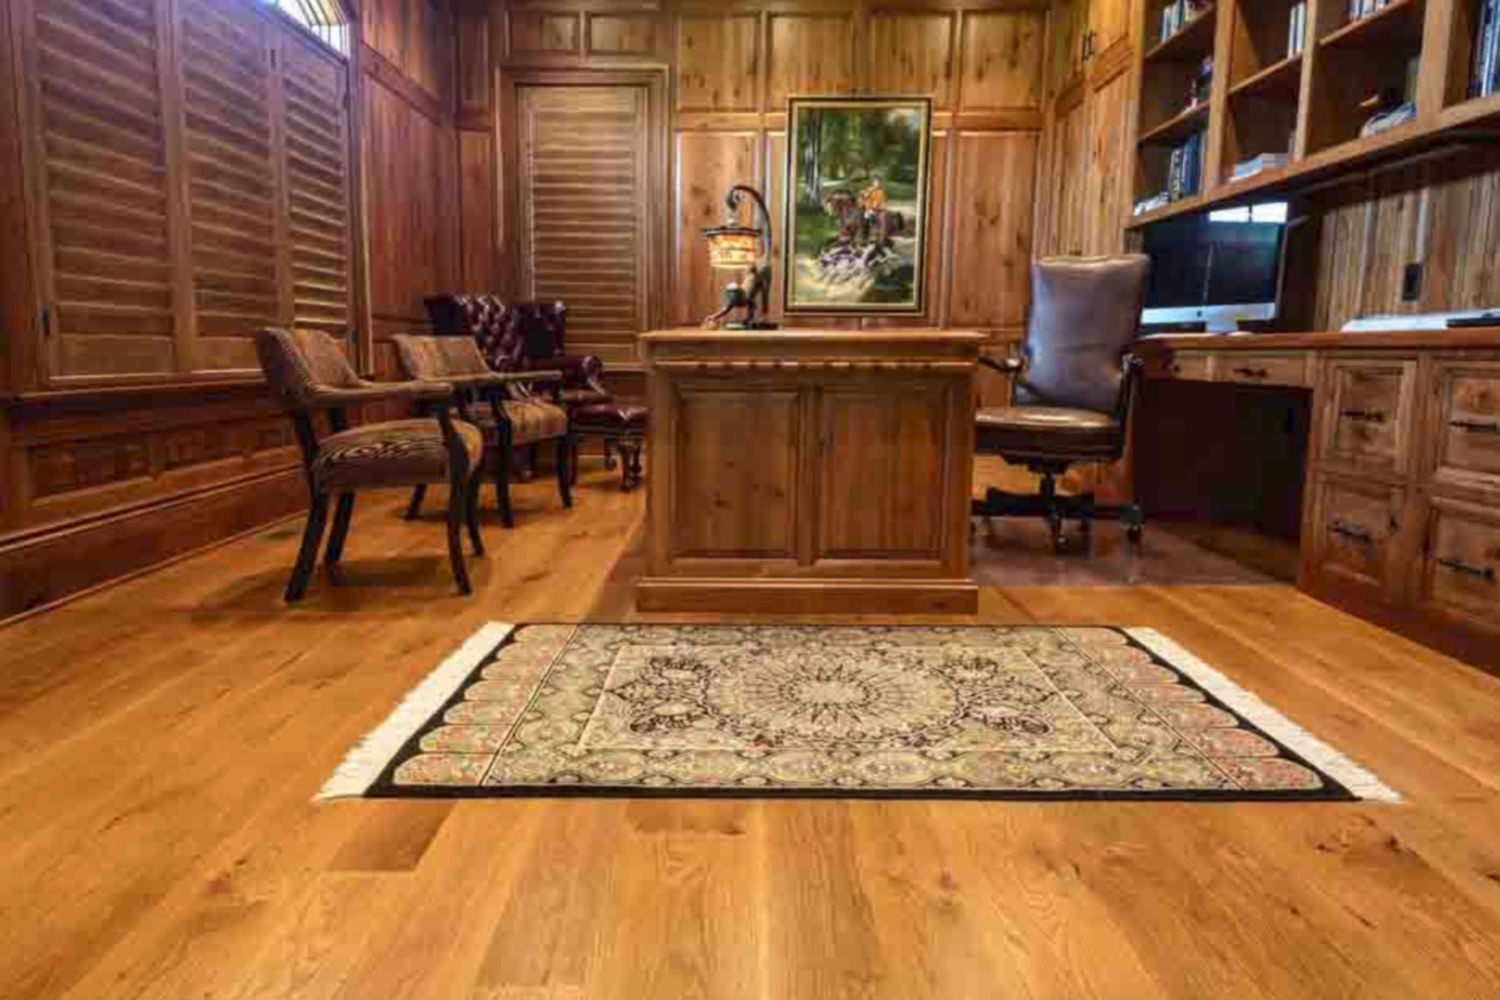 hardwood flooring lowes or home depot of top 5 brands for solid hardwood flooring pertaining to the woods company white oak 1500 x 1000 56a49f6d5f9b58b7d0d7e1db